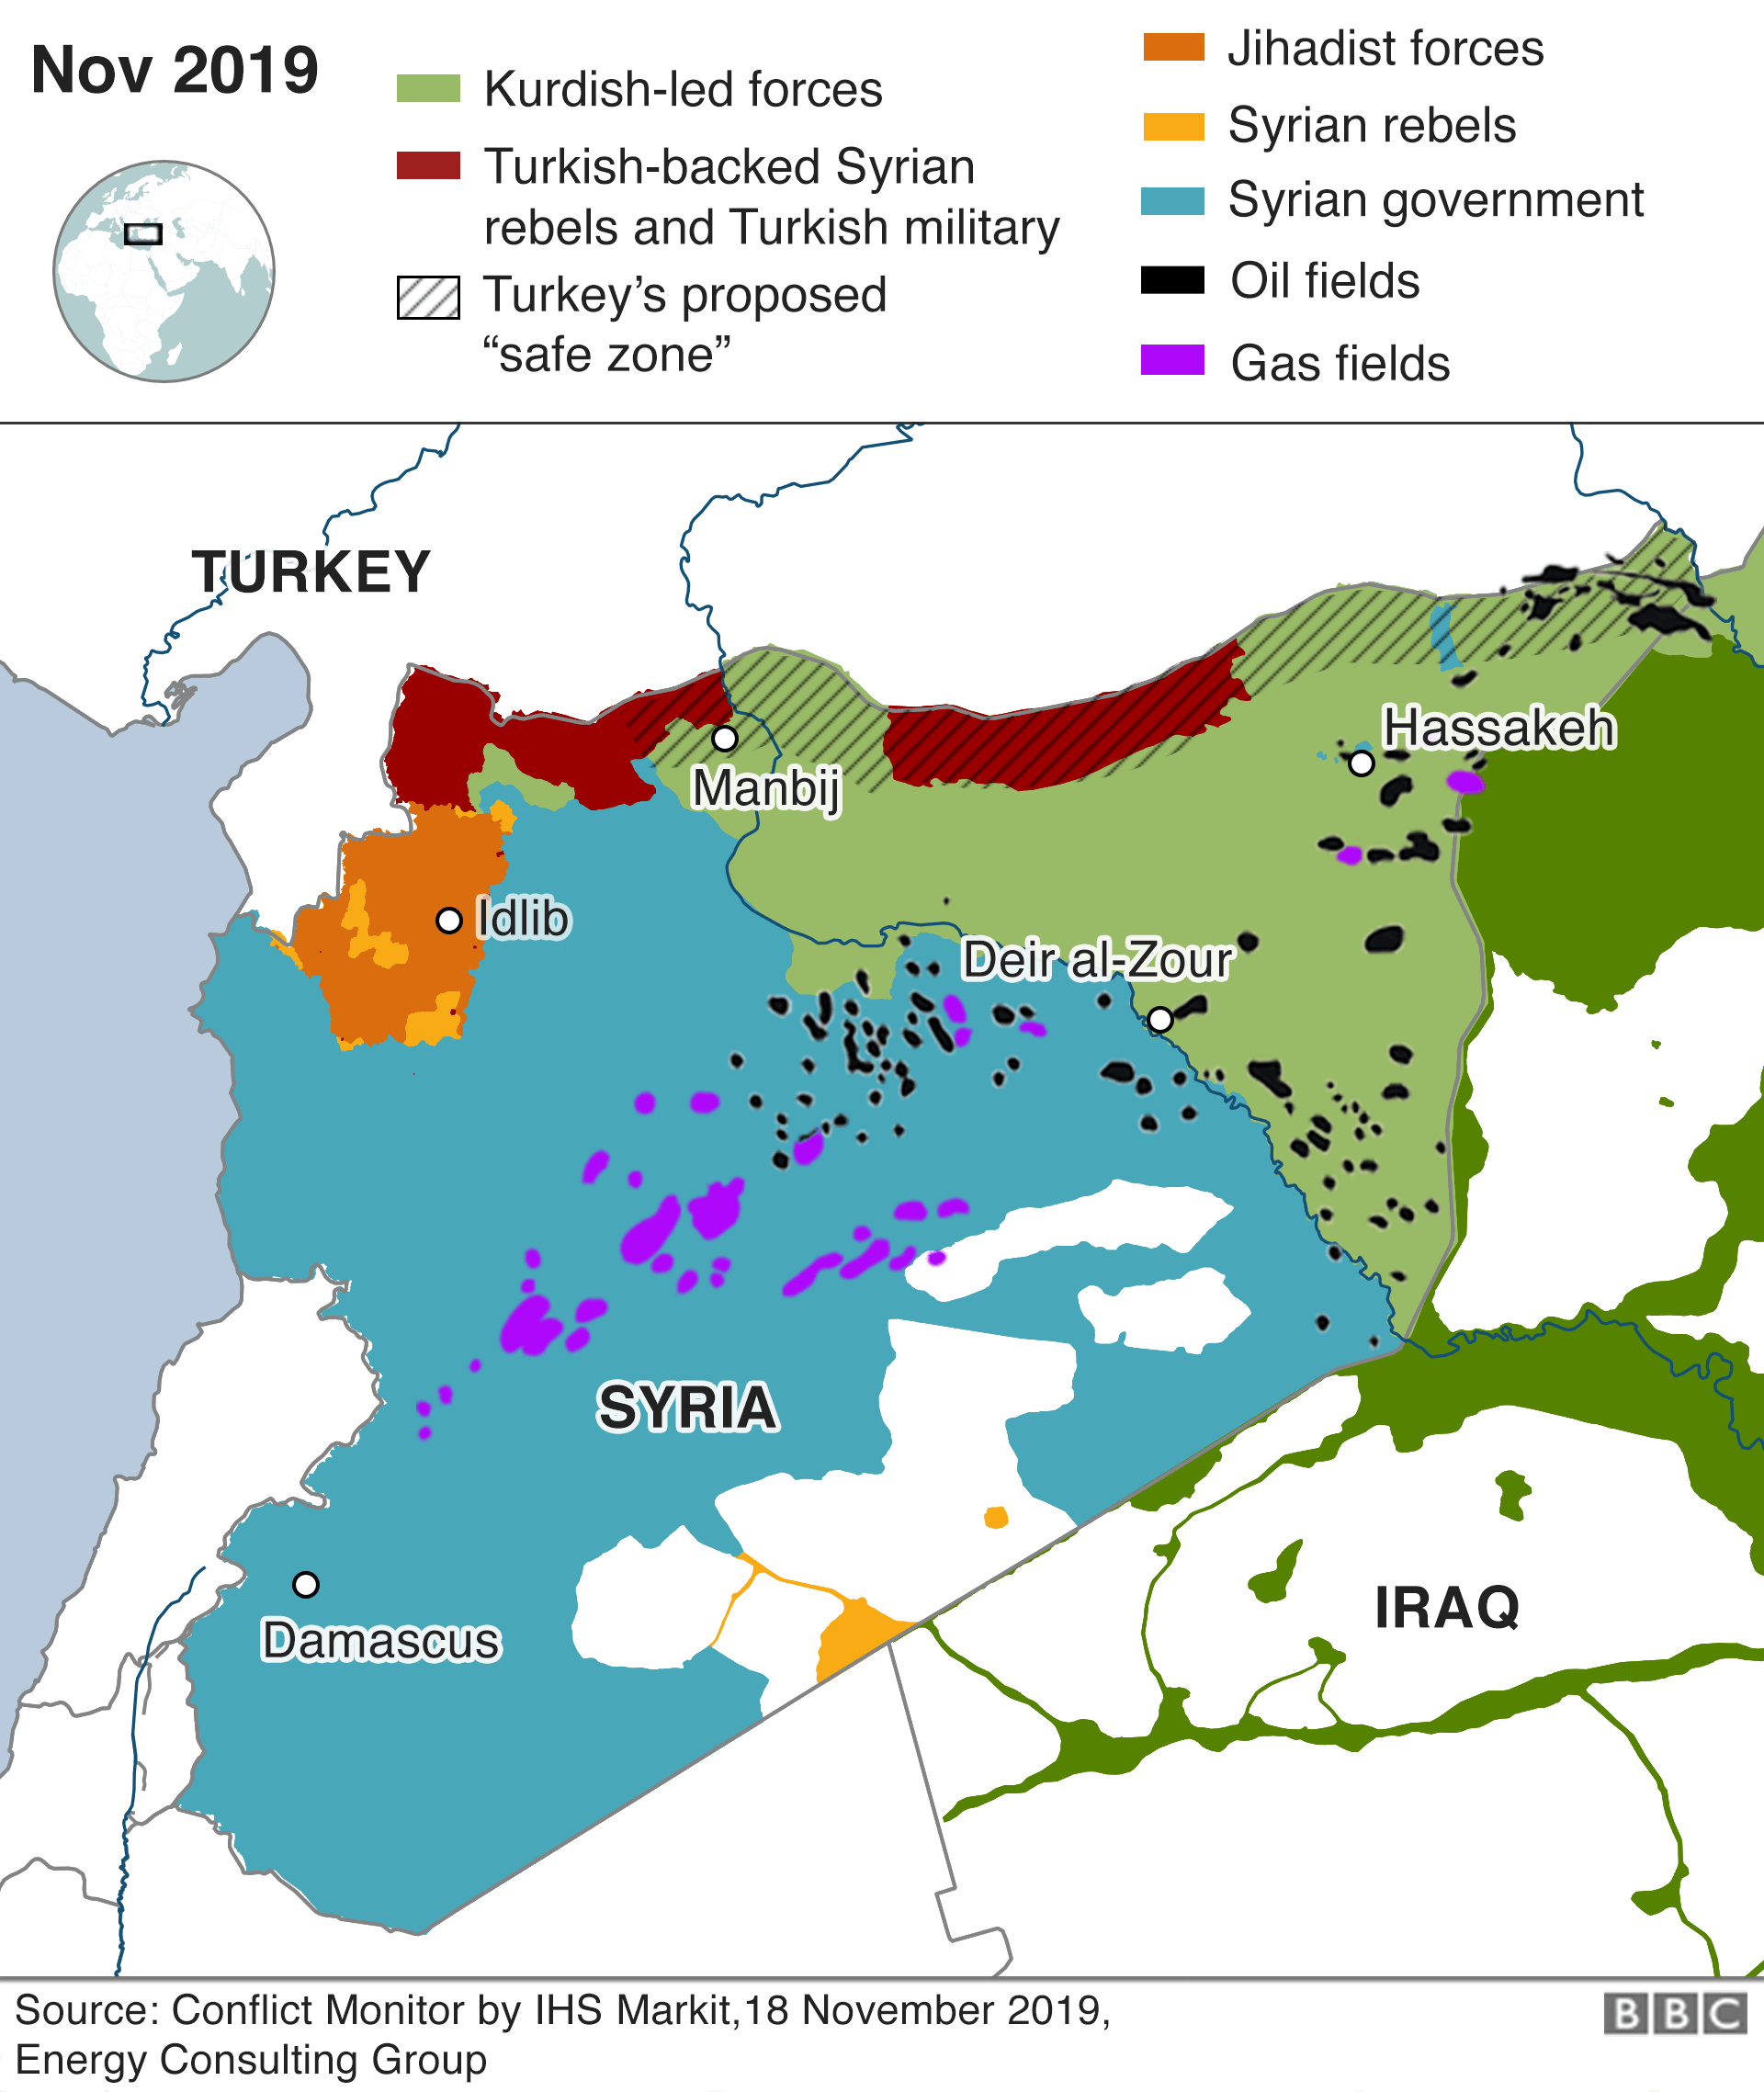 Map of Syria showing oil and gas fields